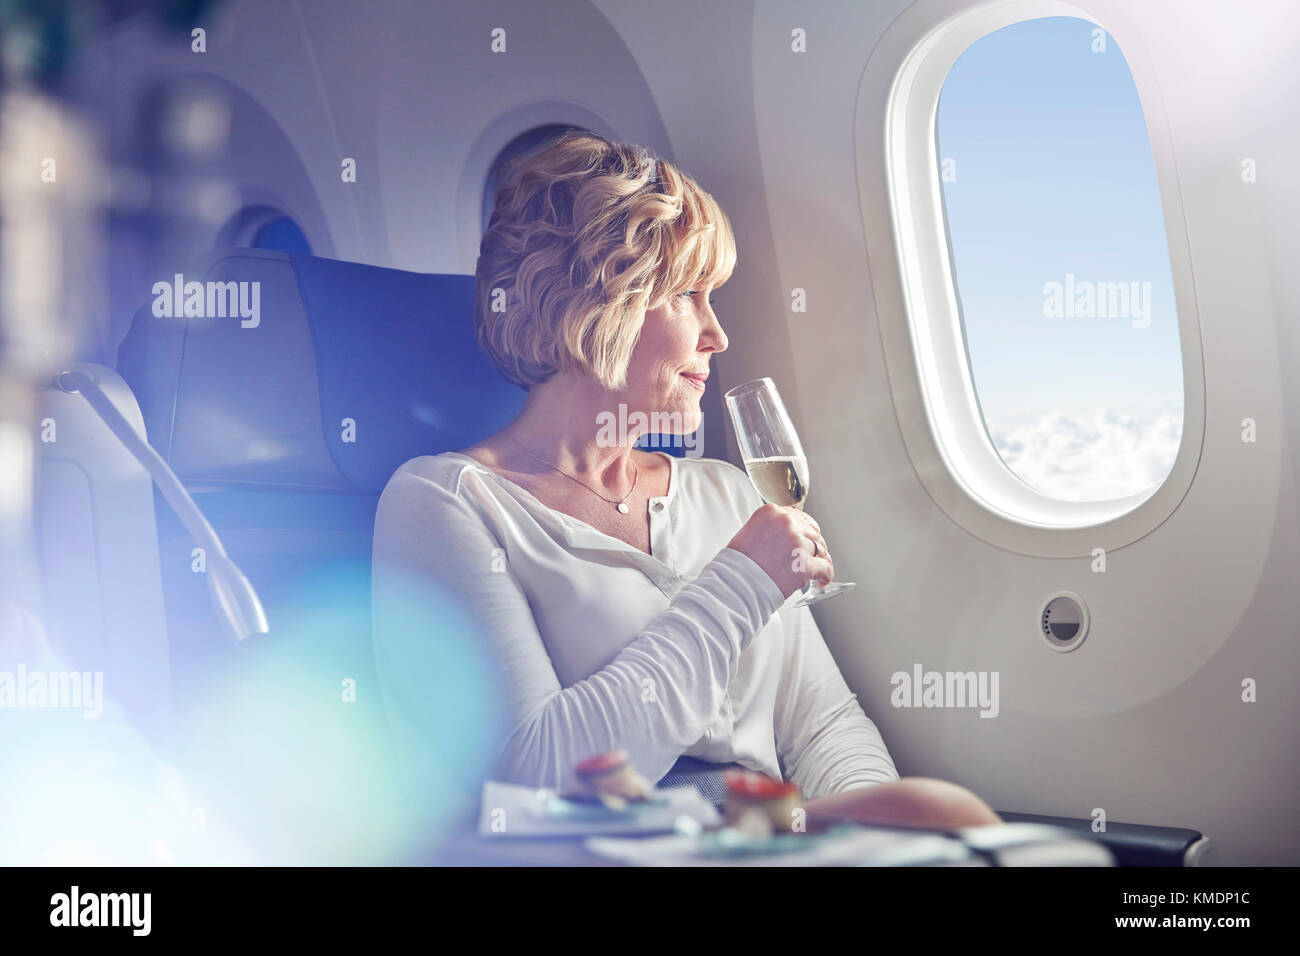 Mature woman drinking champagne,looking out window in first class on airplane - Stock Image